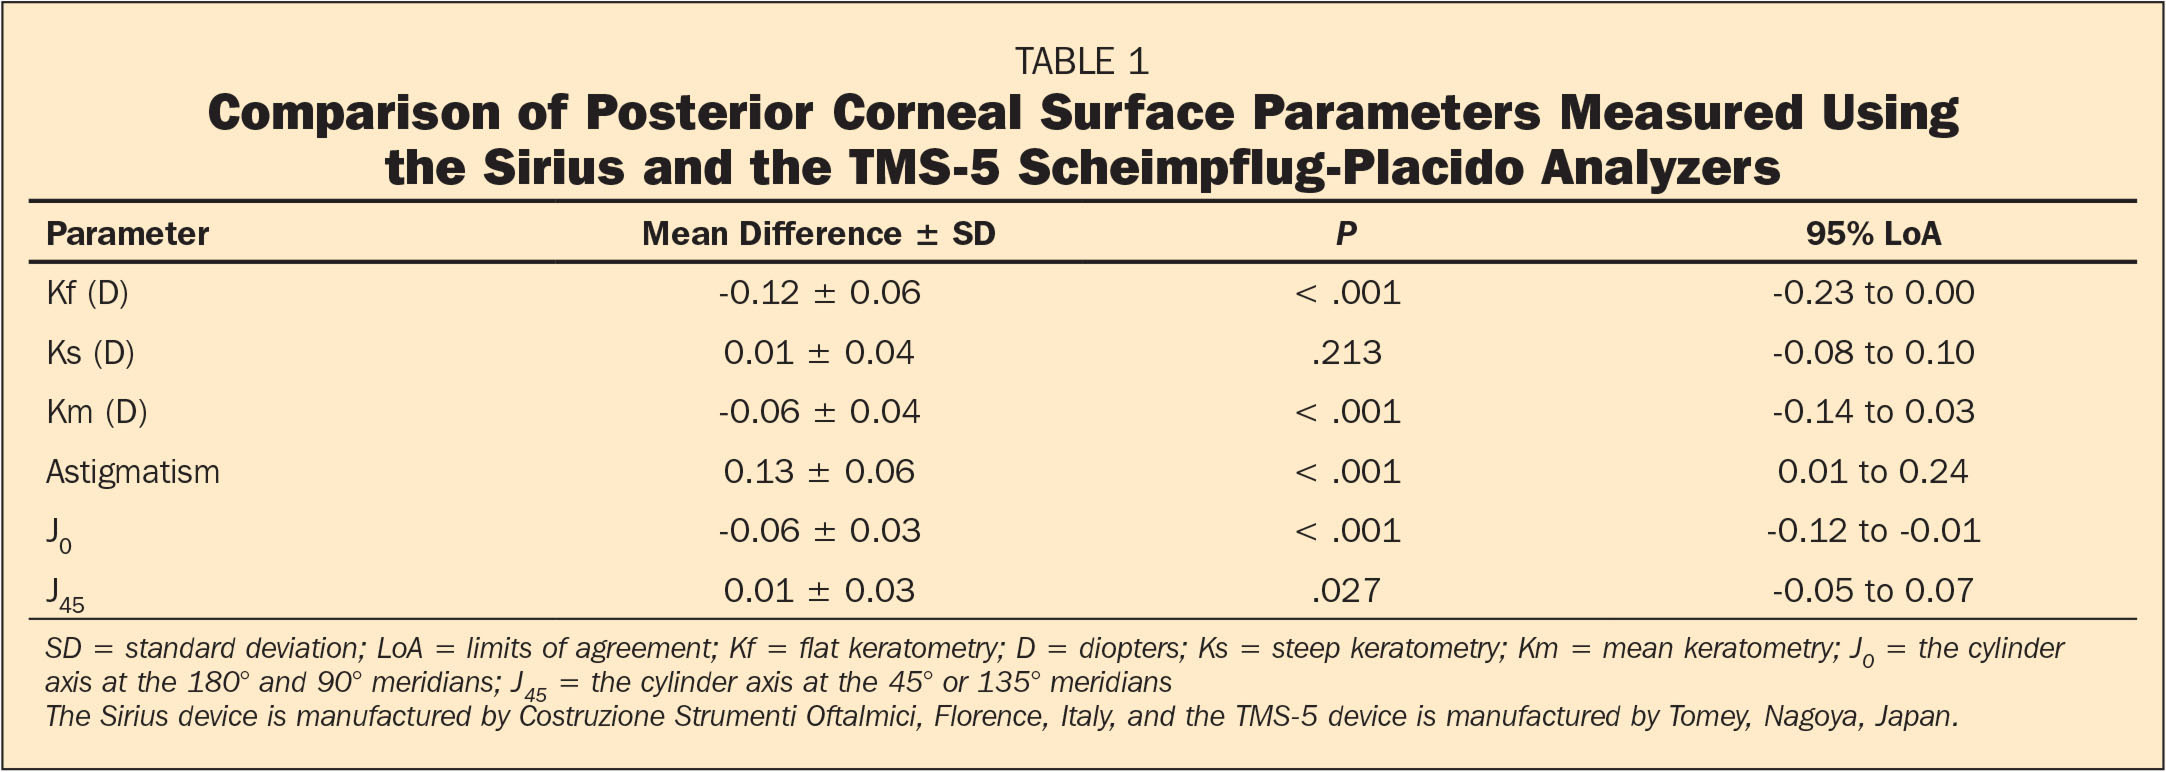 Comparison of Posterior Corneal Surface Parameters Measured Using the Sirius and the TMS-5 Scheimpflug-Placido Analyzers